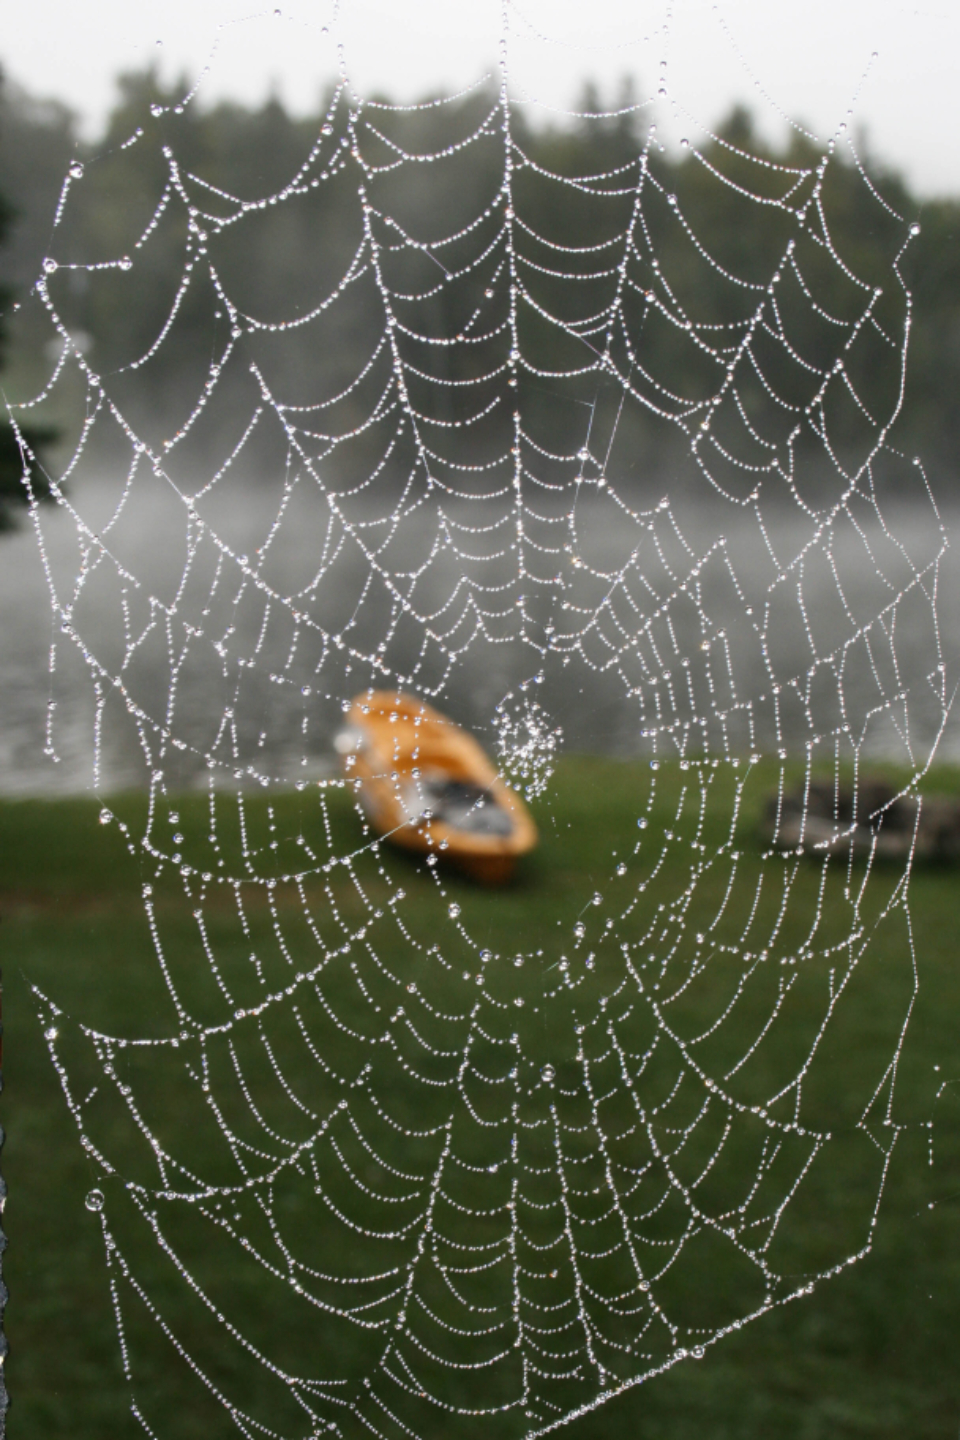 spider web nature